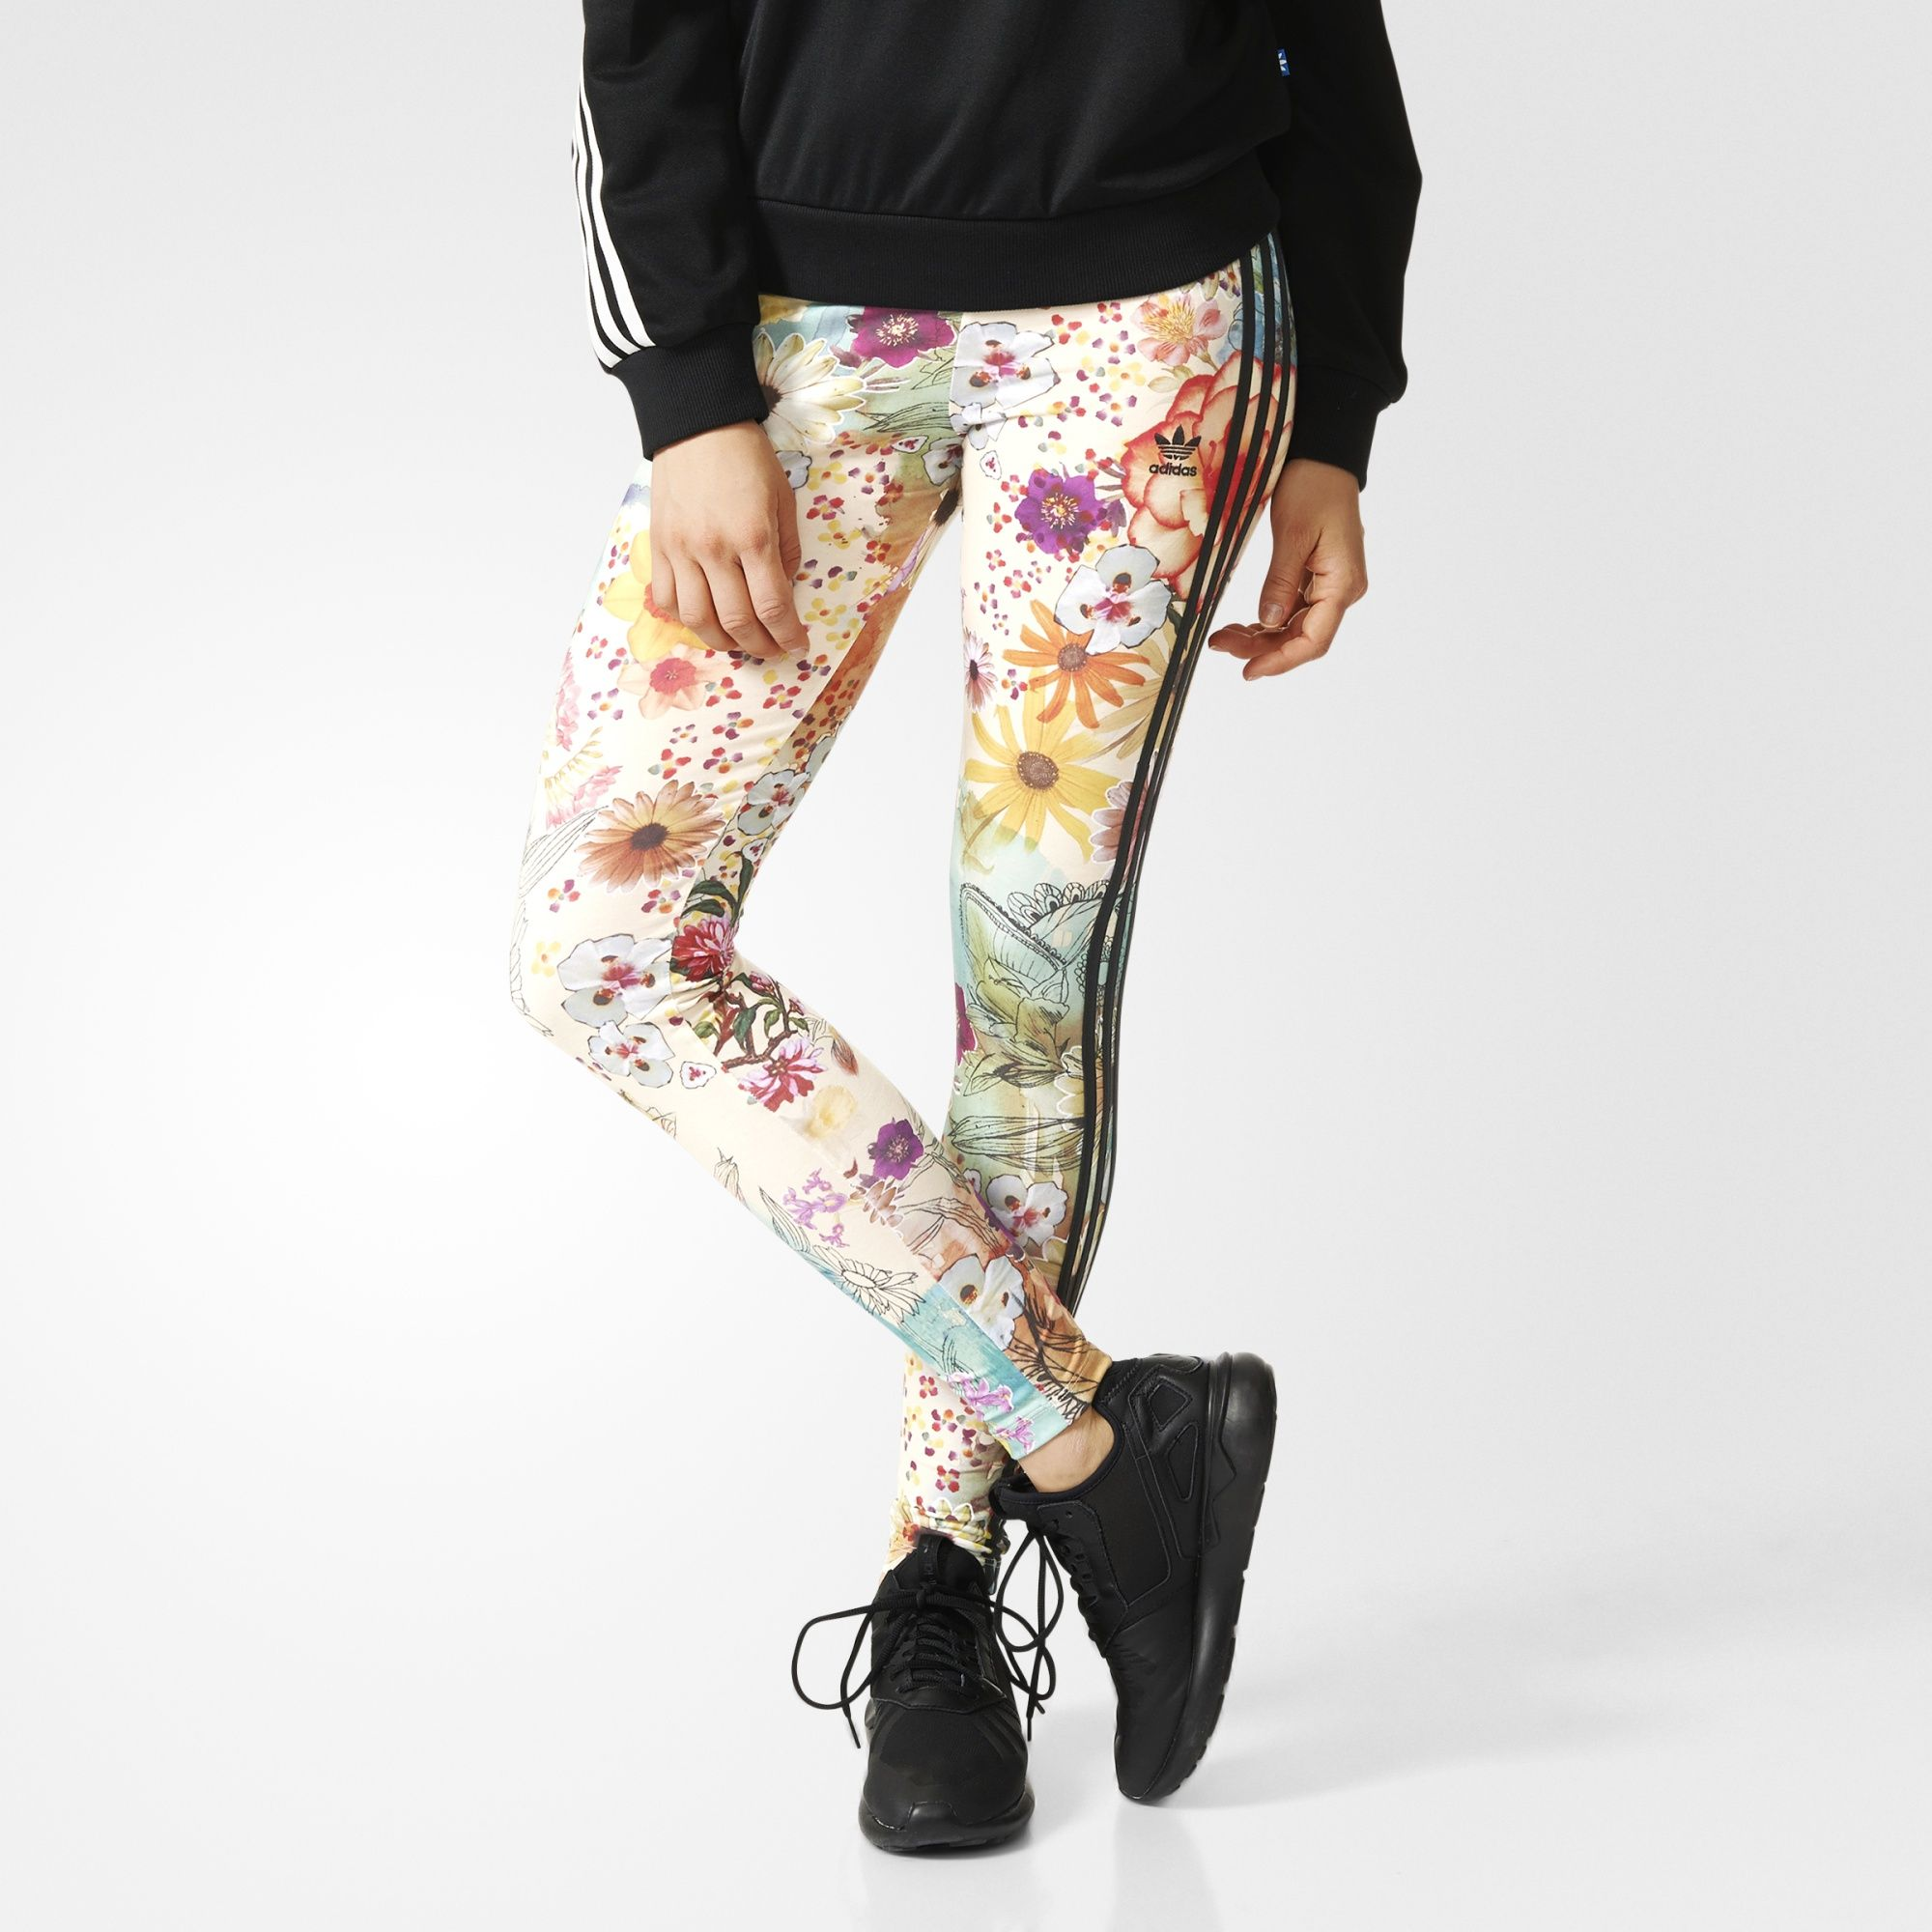 292d167643e7d Designed in collaboration with Brazil's The FARM Company, these women's  leggings have a vibrant floral print inspired by the lush beauty of Rio de  Janeiro's ...